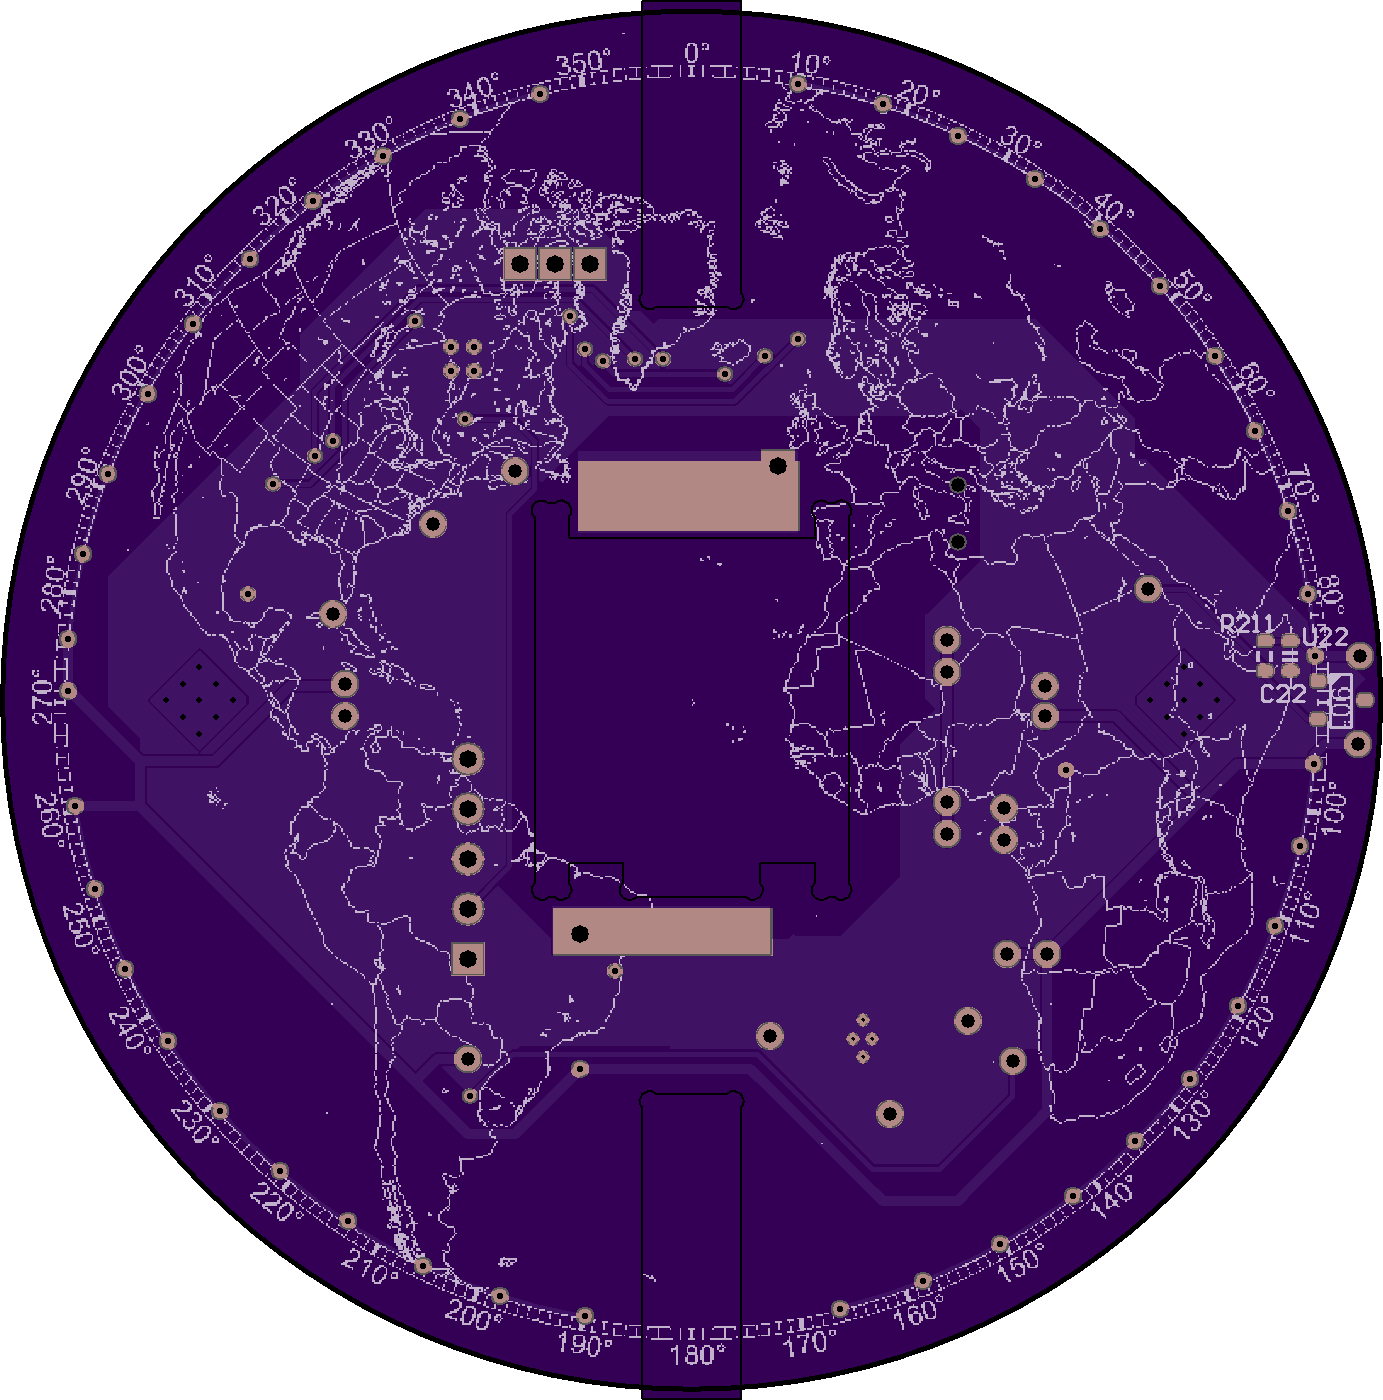 Global View Shows The Earths Continents On A Spinning Persistence Diy Pcb How To Create Your Printed Circuit Board O Hackadayio As Youd Expect Coordinating Modulation Of Those Leds Is Tricky Part This Build Jarrett Using Hall Effect Sensor Detect Whenever One